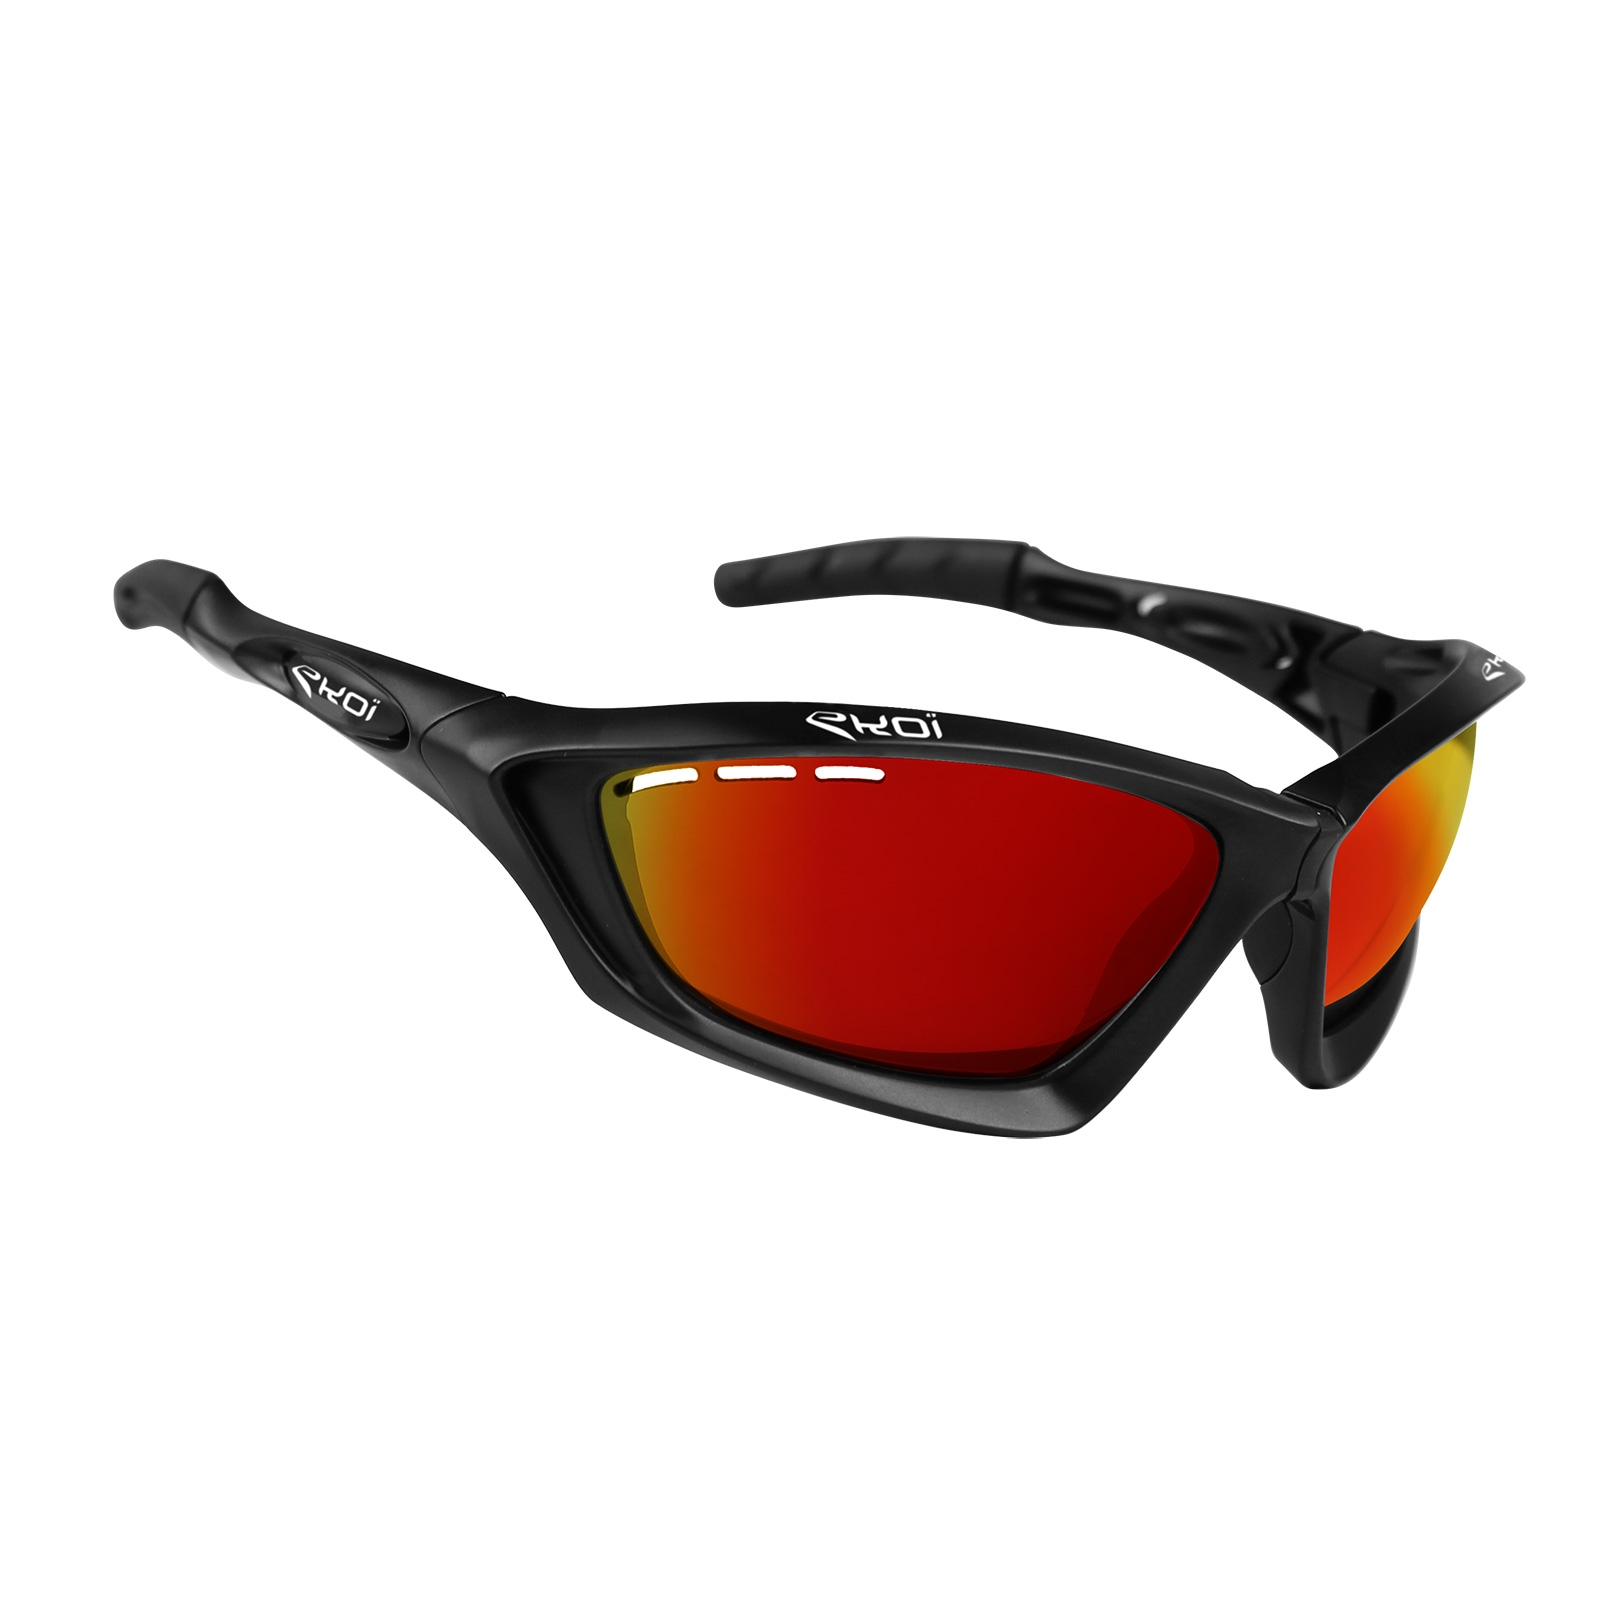 Sunglasses With Red Lenses  ekoi fit first matt black sunglasses revo red lens